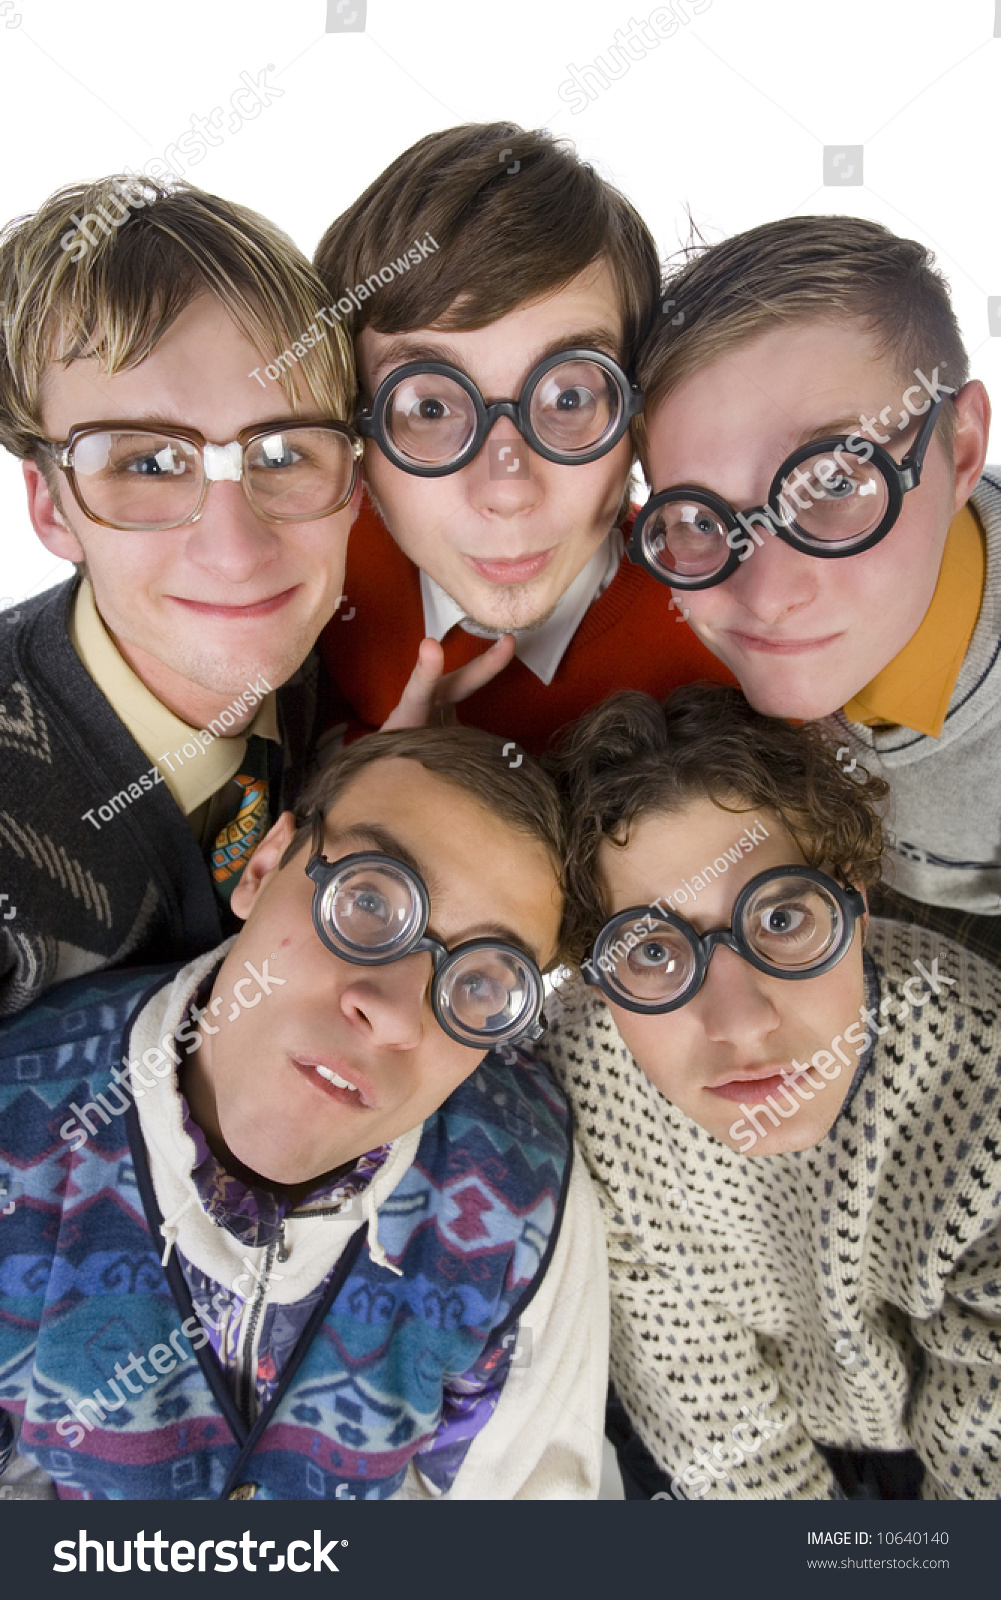 Nerdy guys dating site